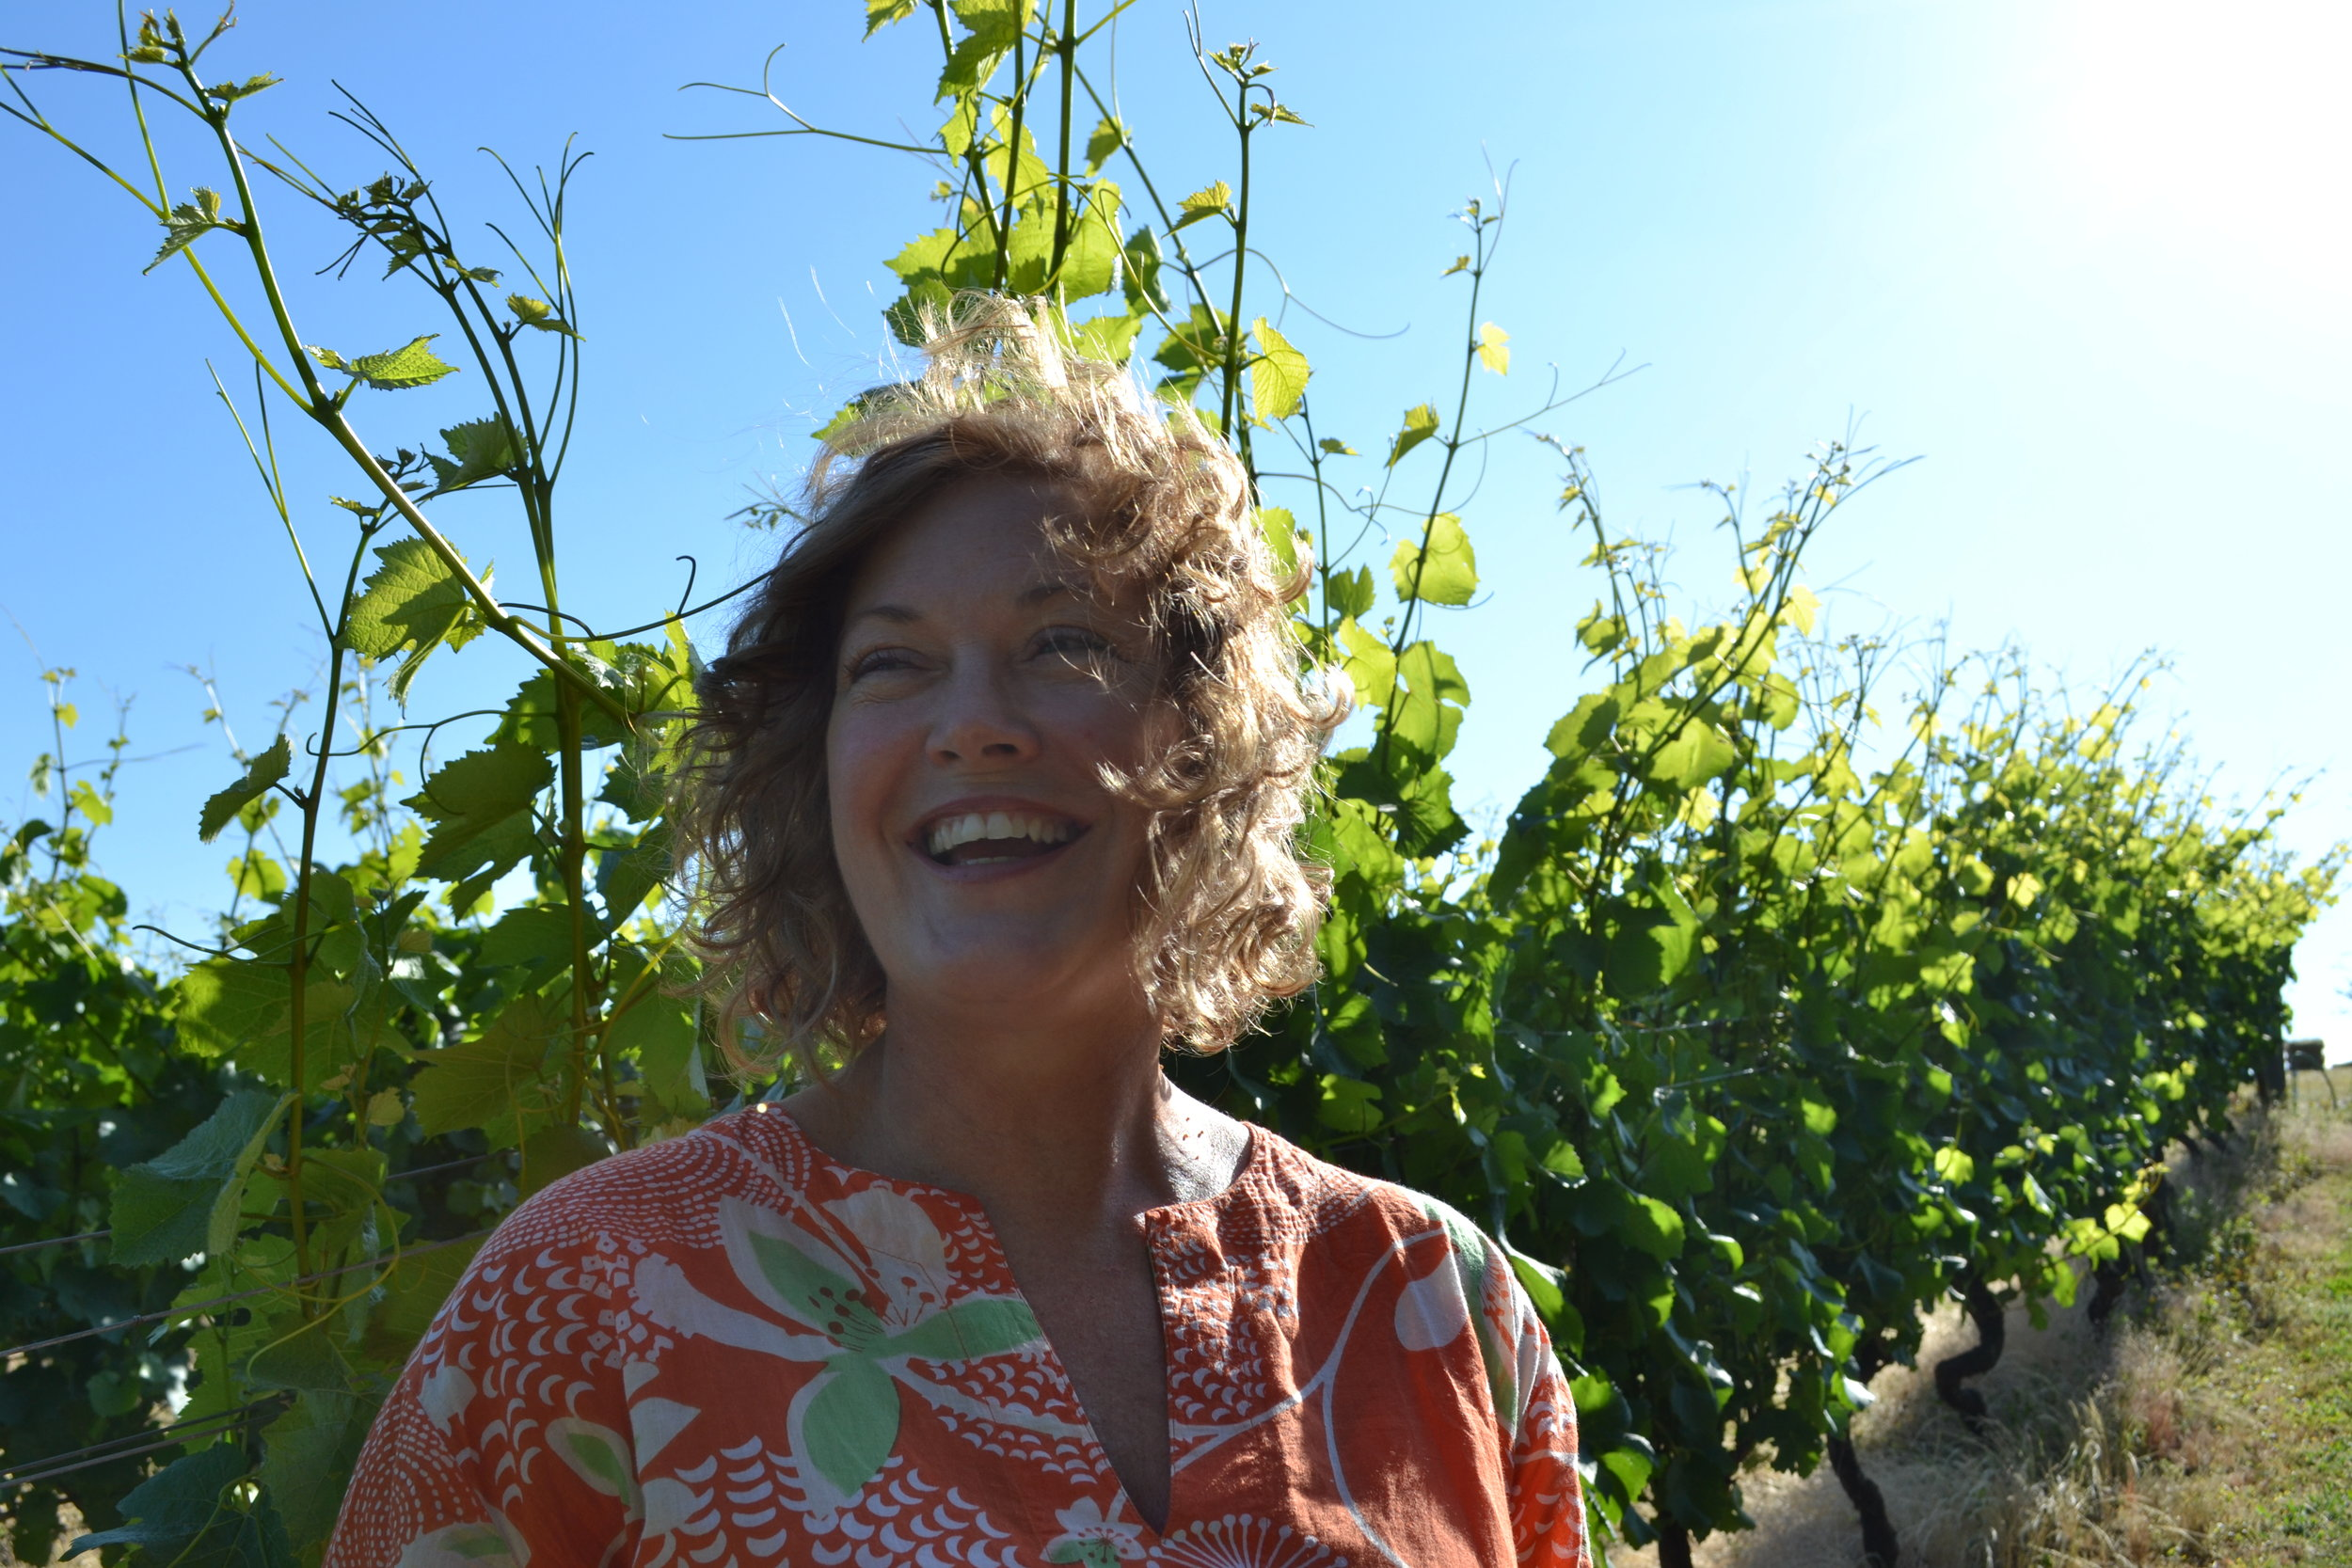 Janine Julian, owner of The Vine Travelers, offers personalized wine and brewery tours with the option of light adventure from Gorge hikes to clam digging. Laura Leadingham